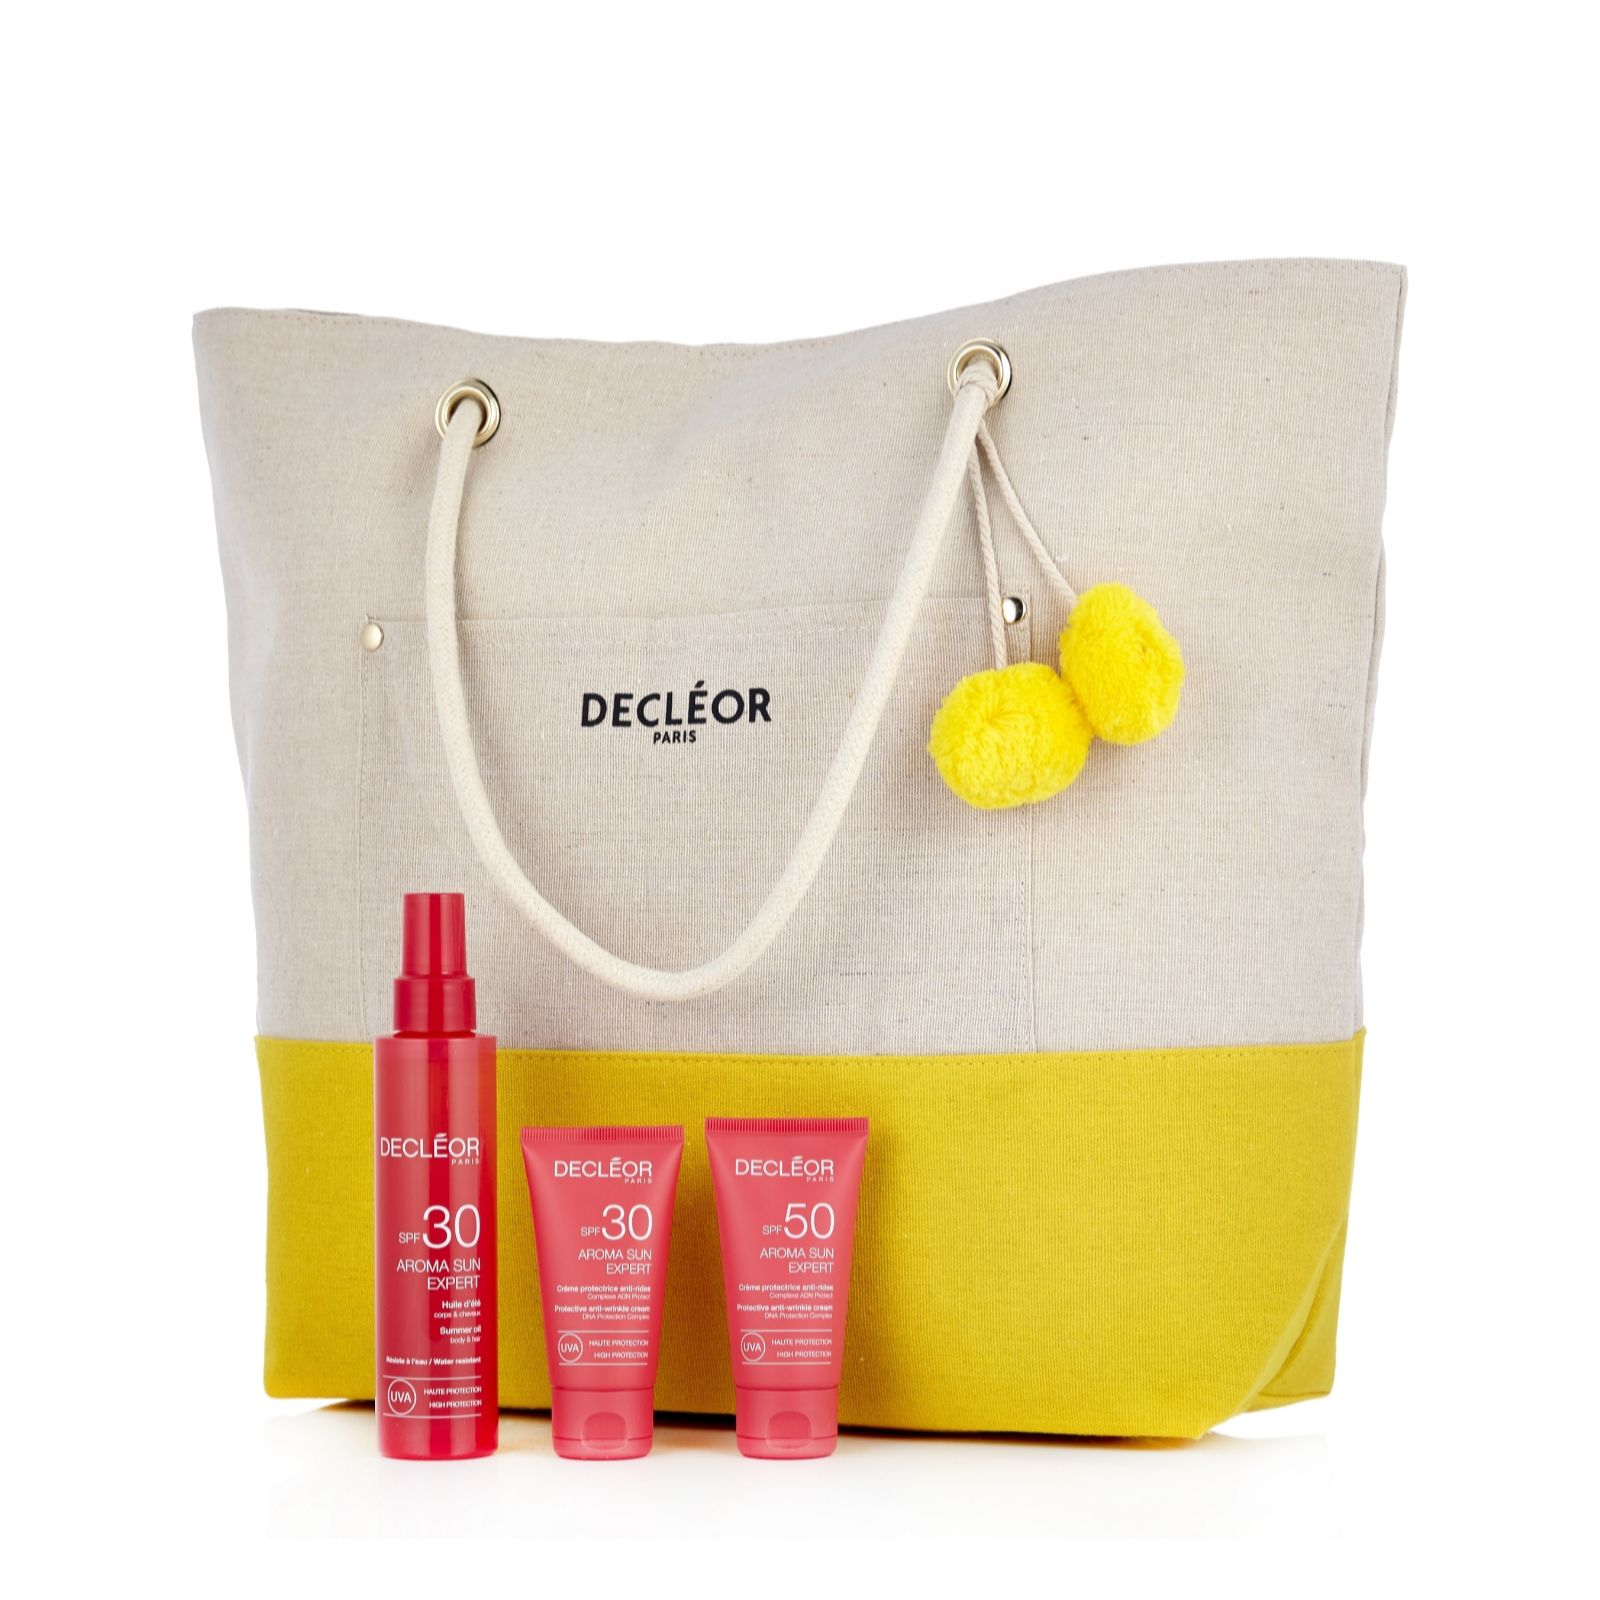 d0daeb77f385 Decleor 3 Piece Anti-Wrinkle Aroma Sun Expert Collection & Bag - QVC UK